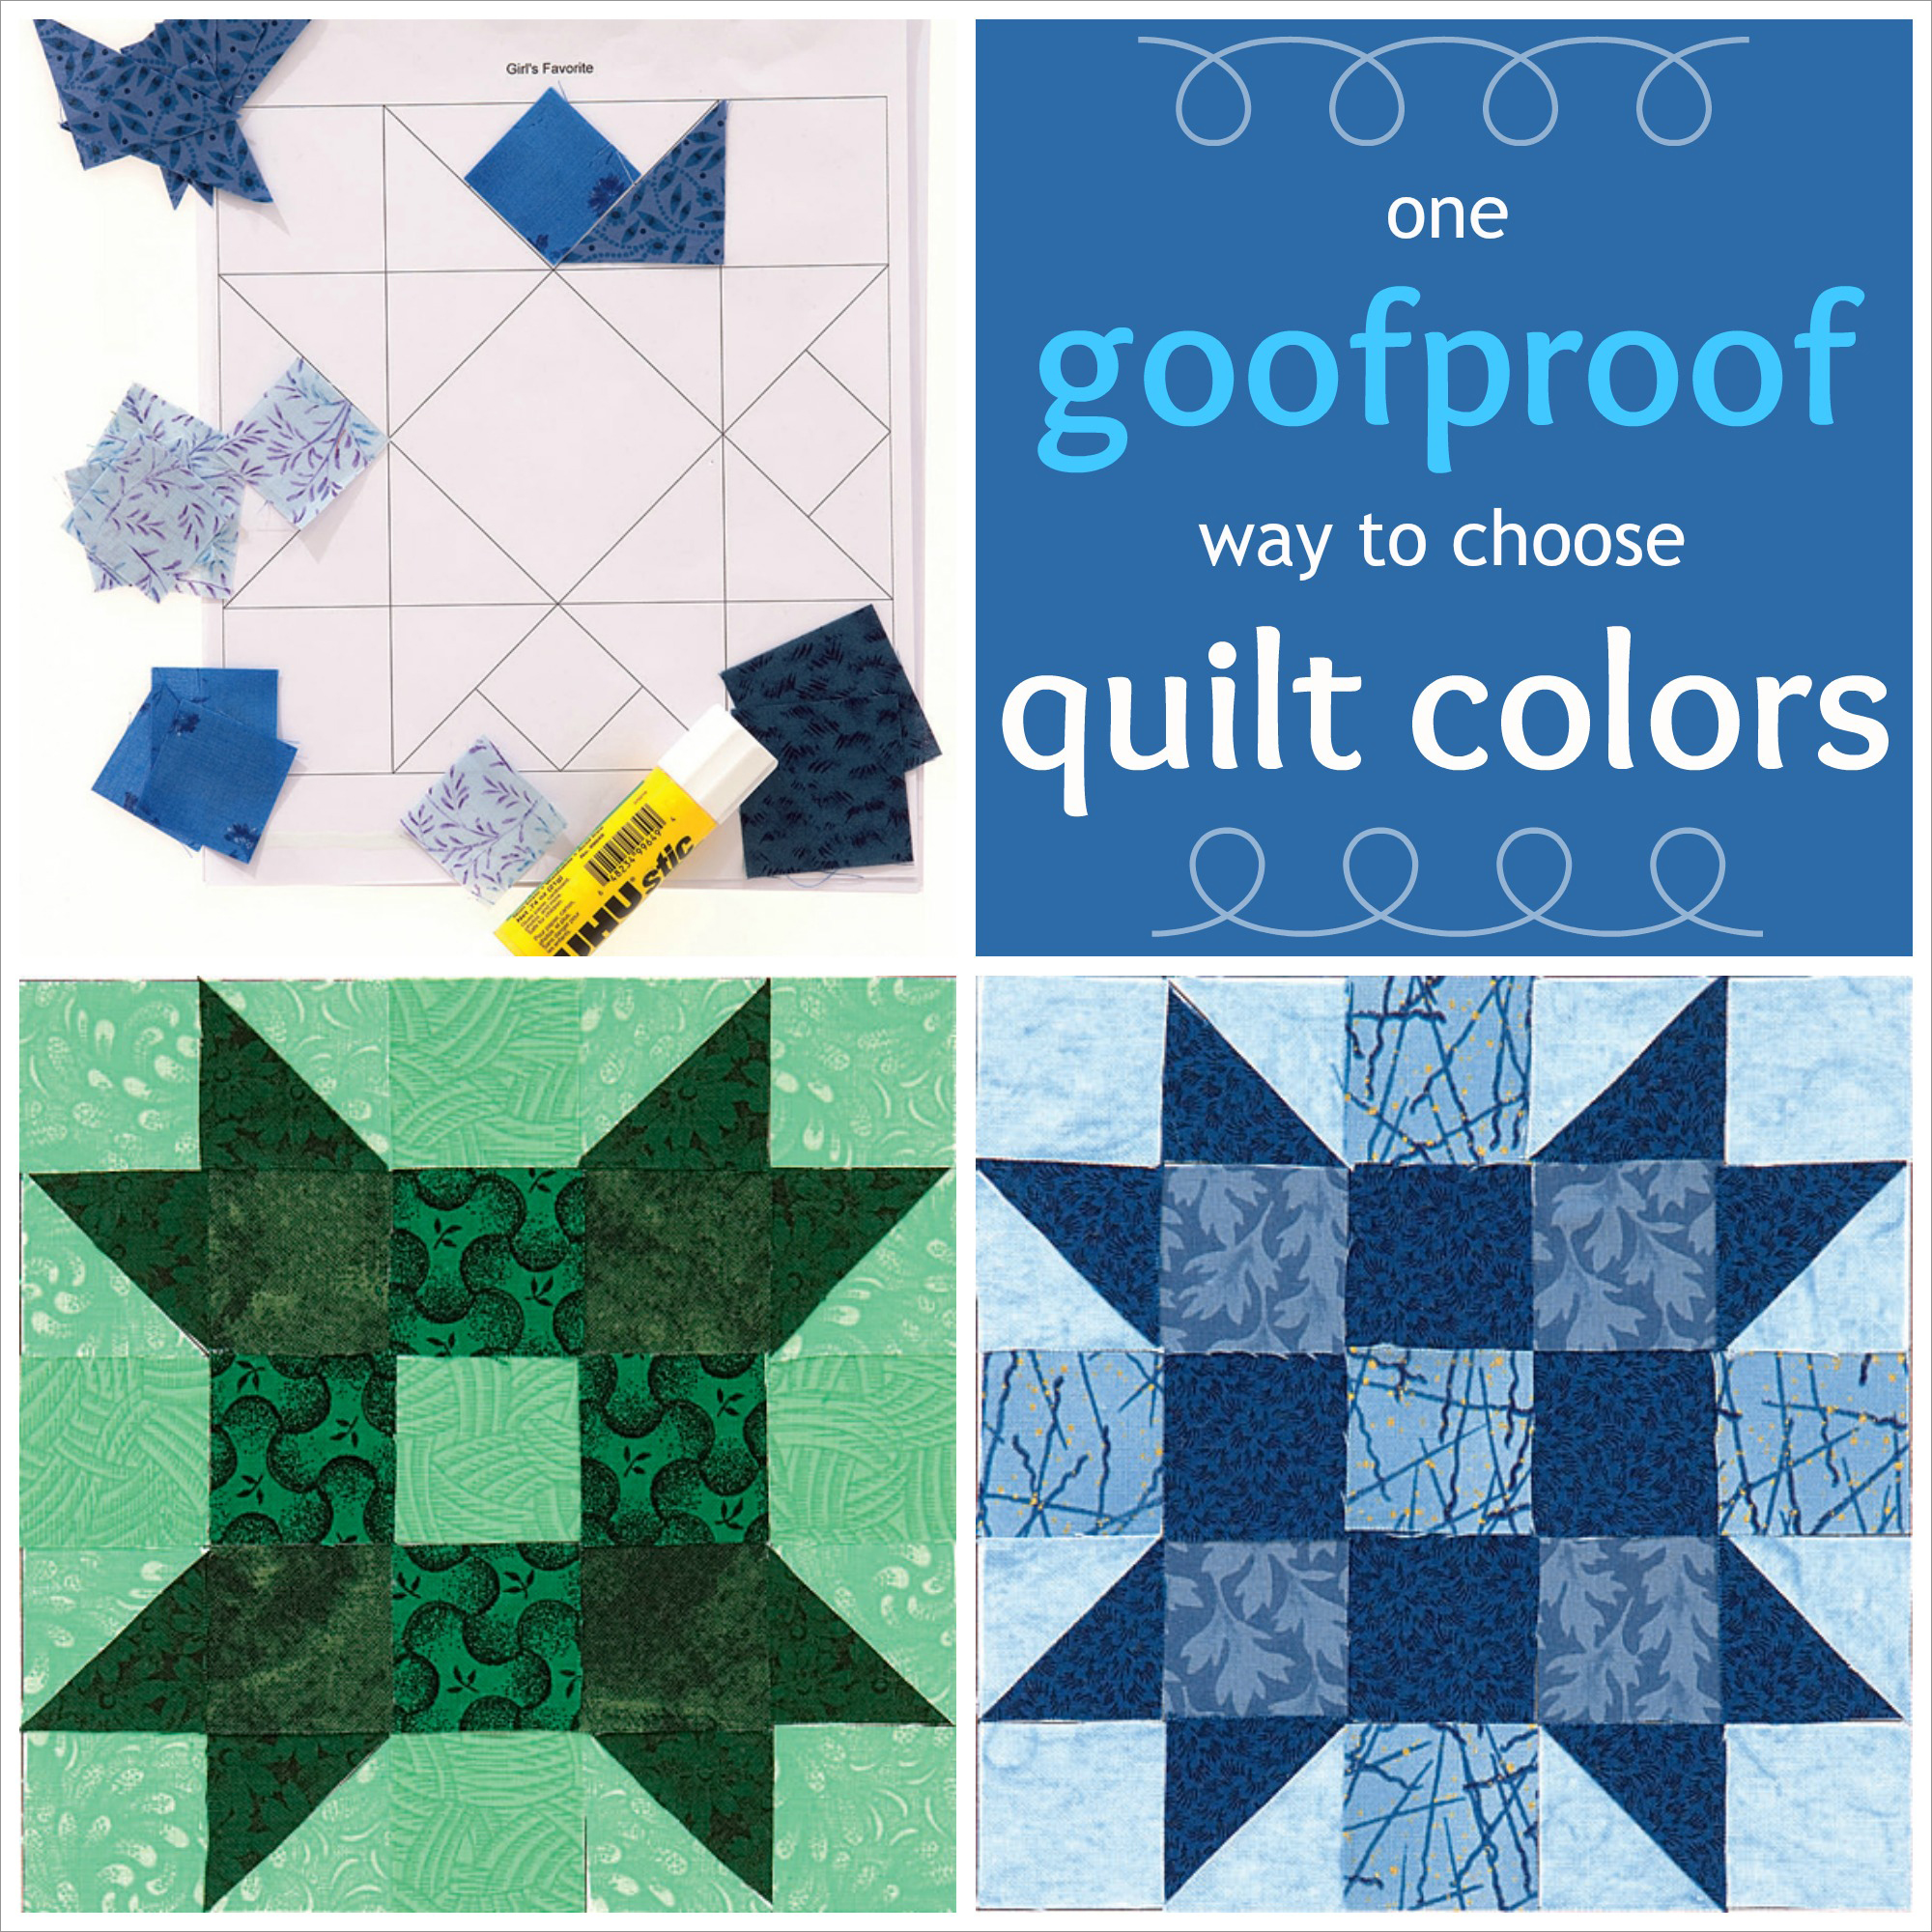 goofproof way to choose quilt colors